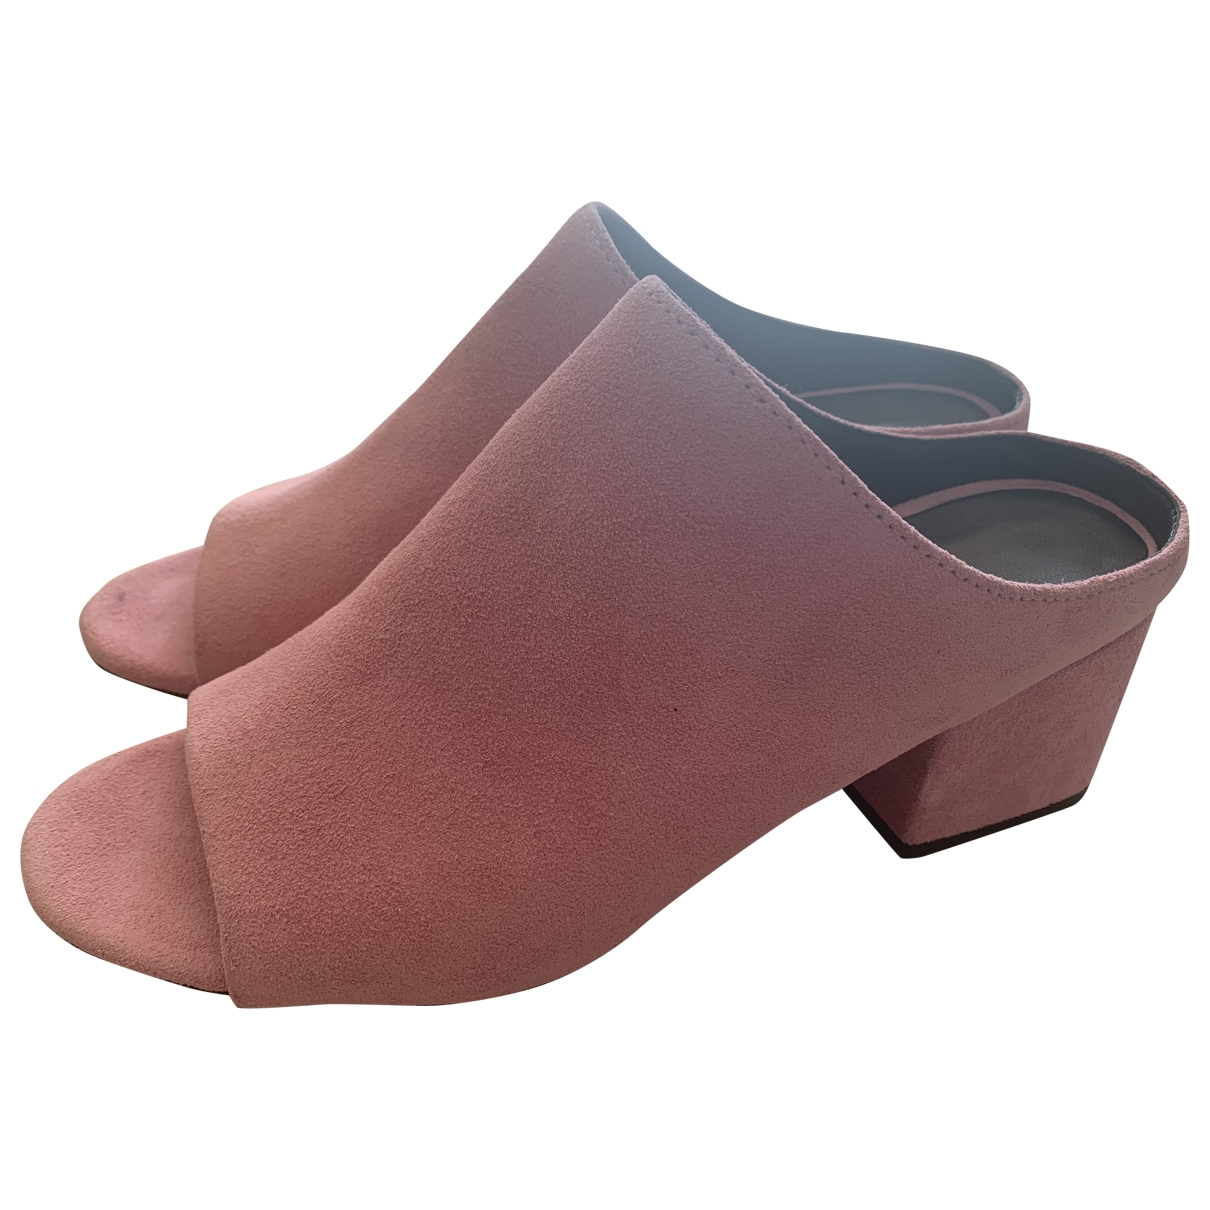 3.1 Phillip Lim \N Pink Suede Mules & Clogs for Women 36.5 EU